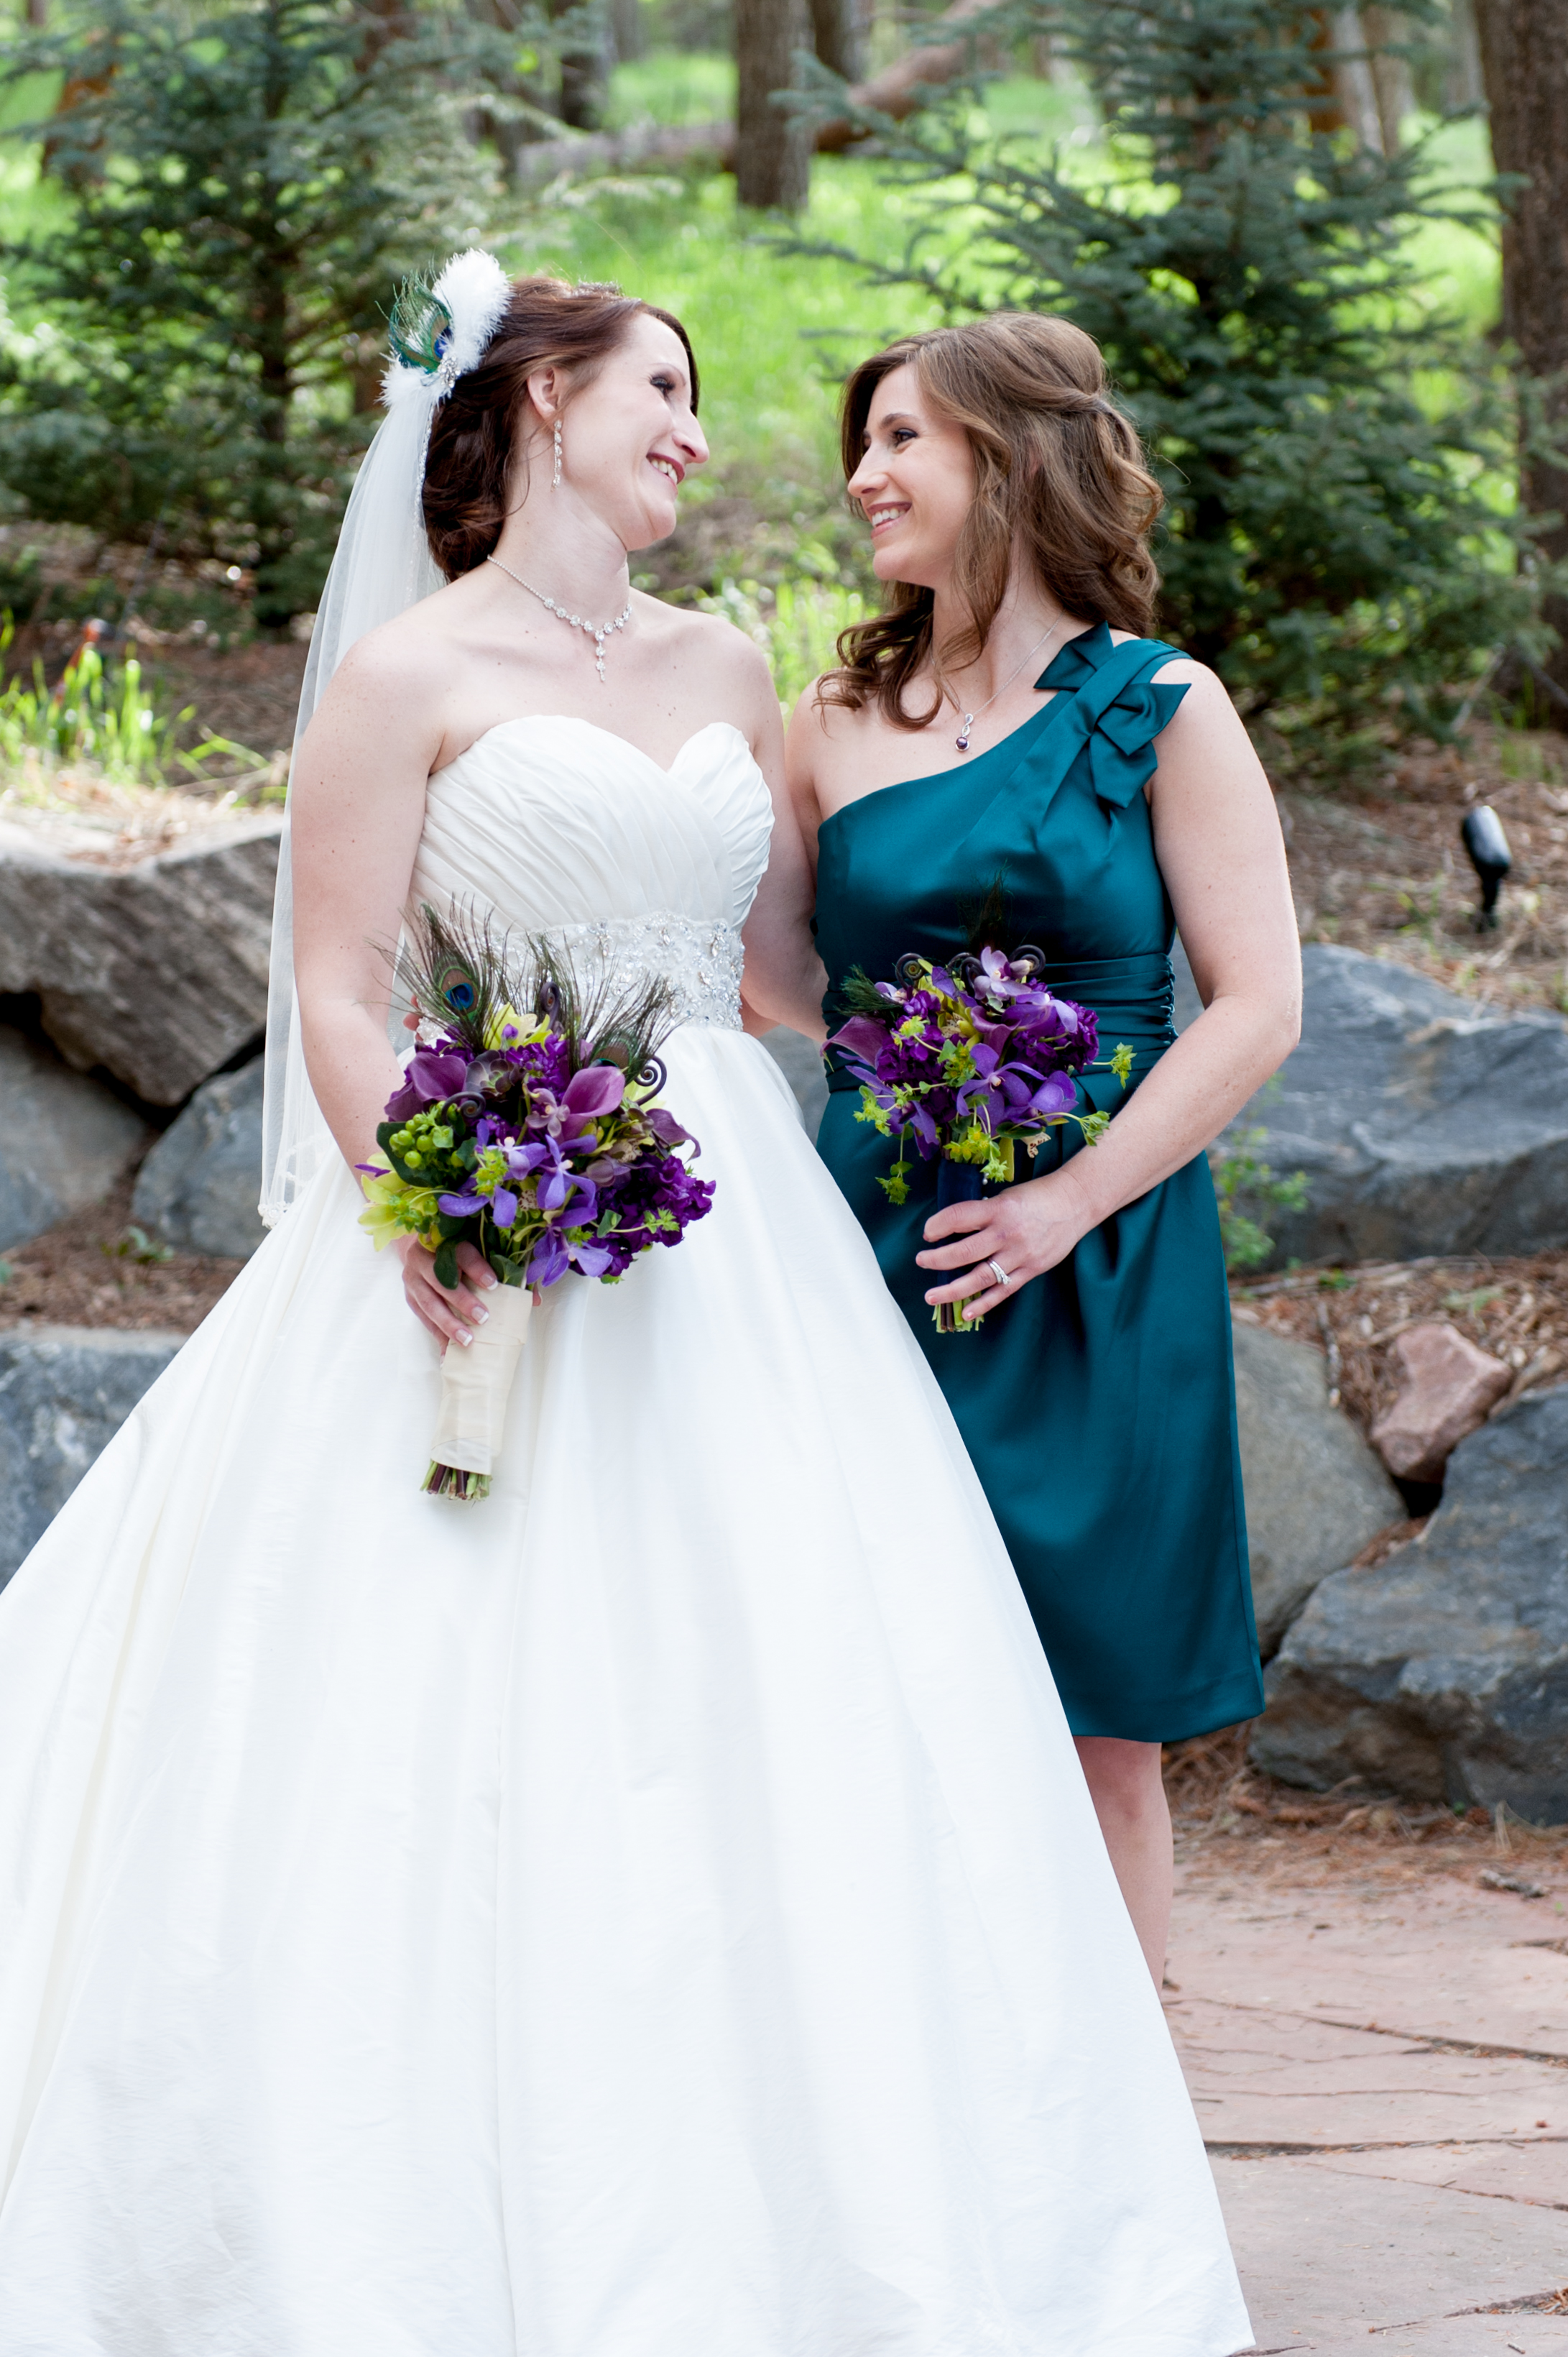 Johnson_and_Johnson_Wedding_DeFiore_Photography (141 of 281).jpg